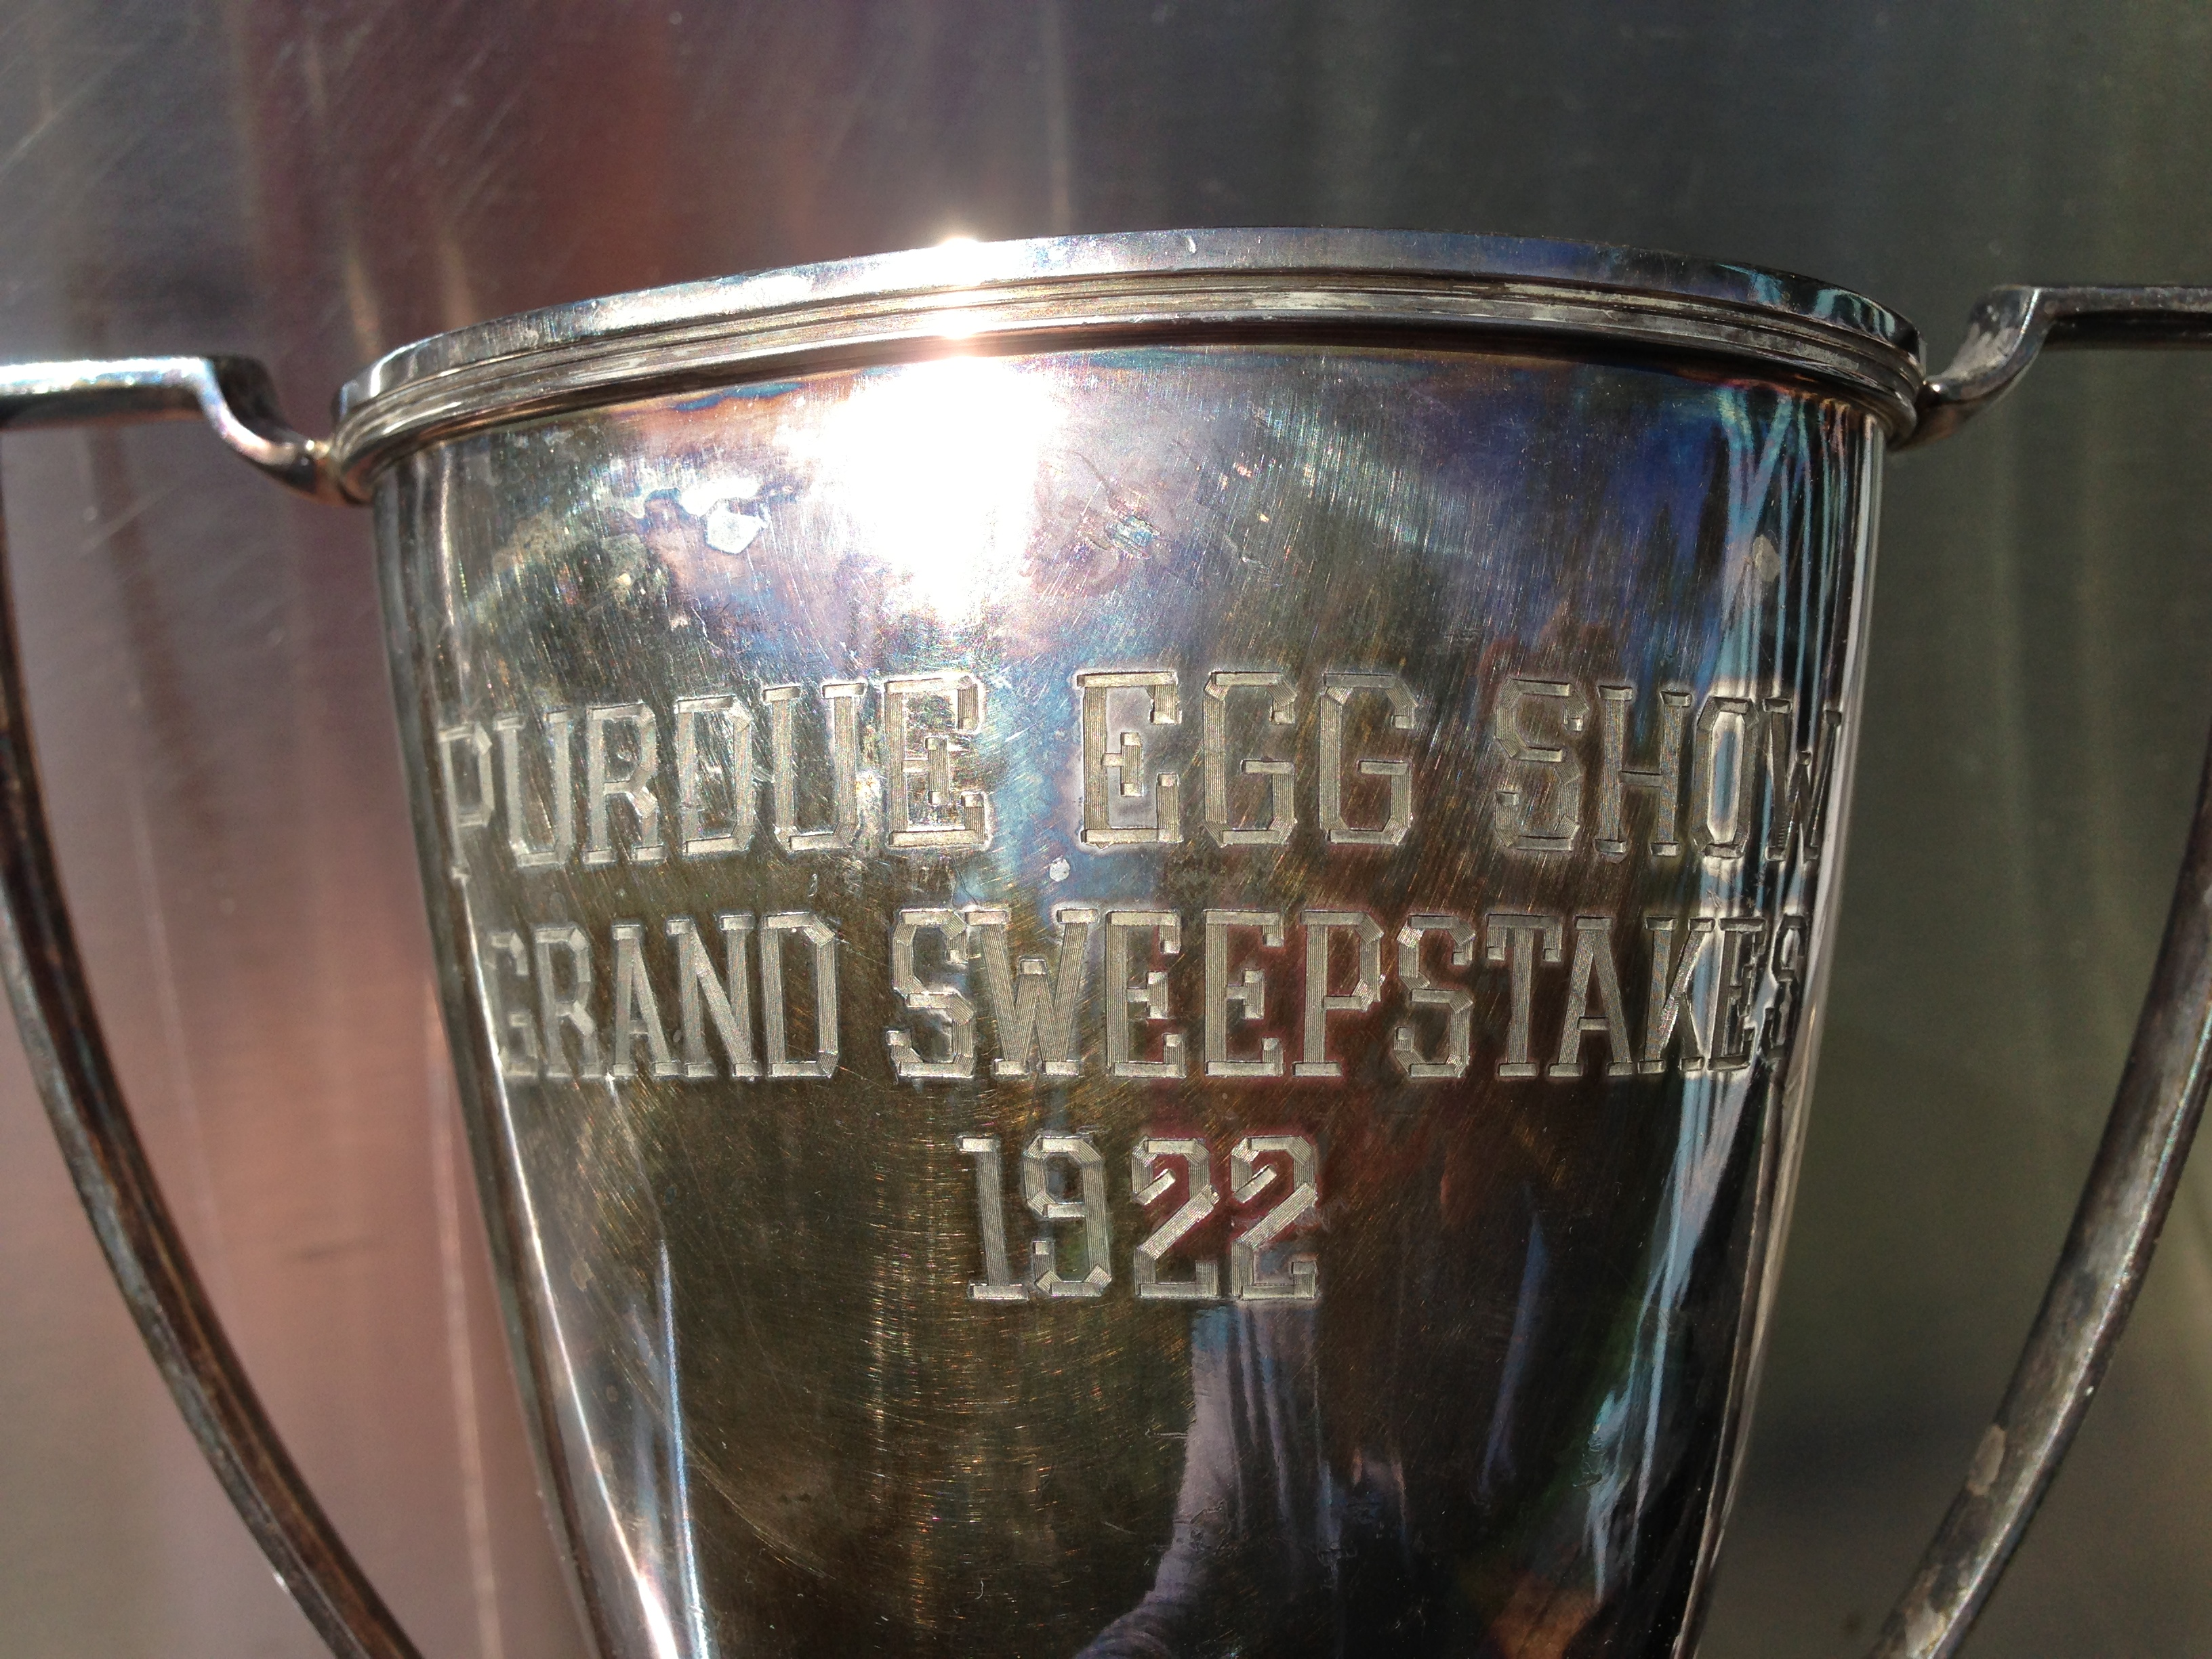 Purdue Egg Show Grand Sweepstakes Winner 1922